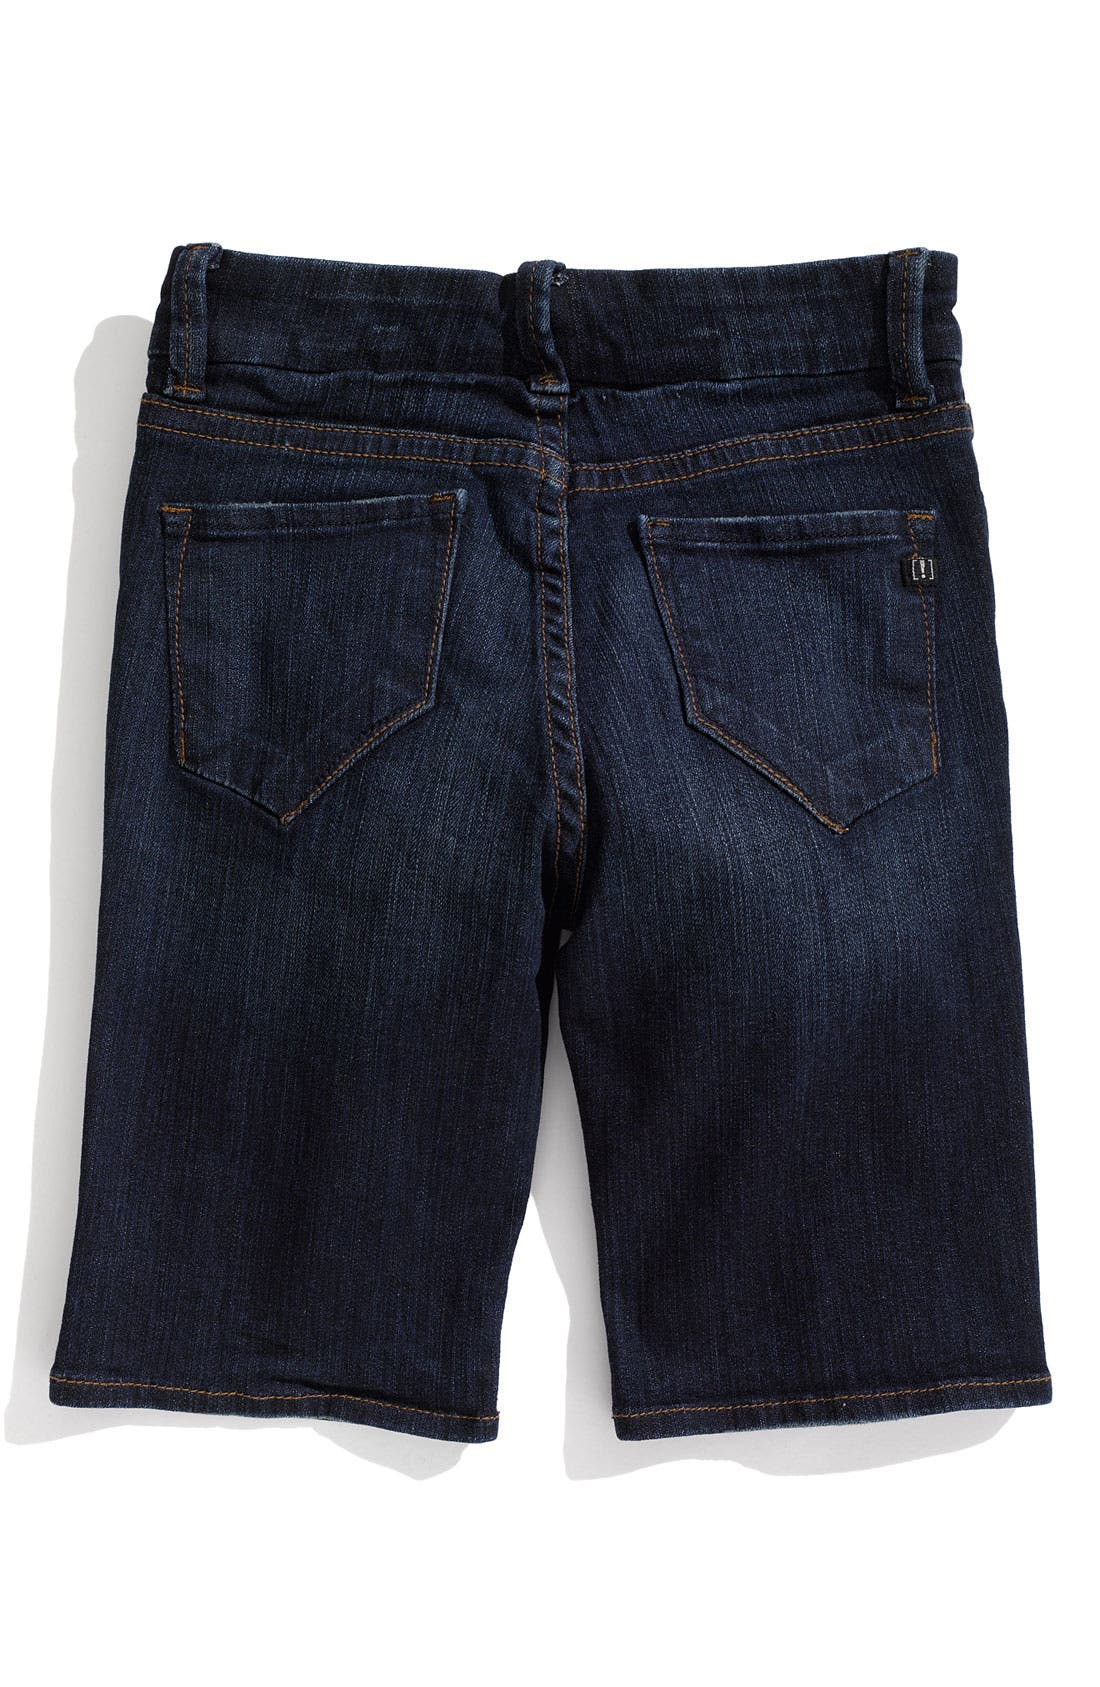 !IT COLLECTIVE,                             !iT JEANS 'Ultra Skinny' Denim Bike Shorts,                             Main thumbnail 1, color,                             460